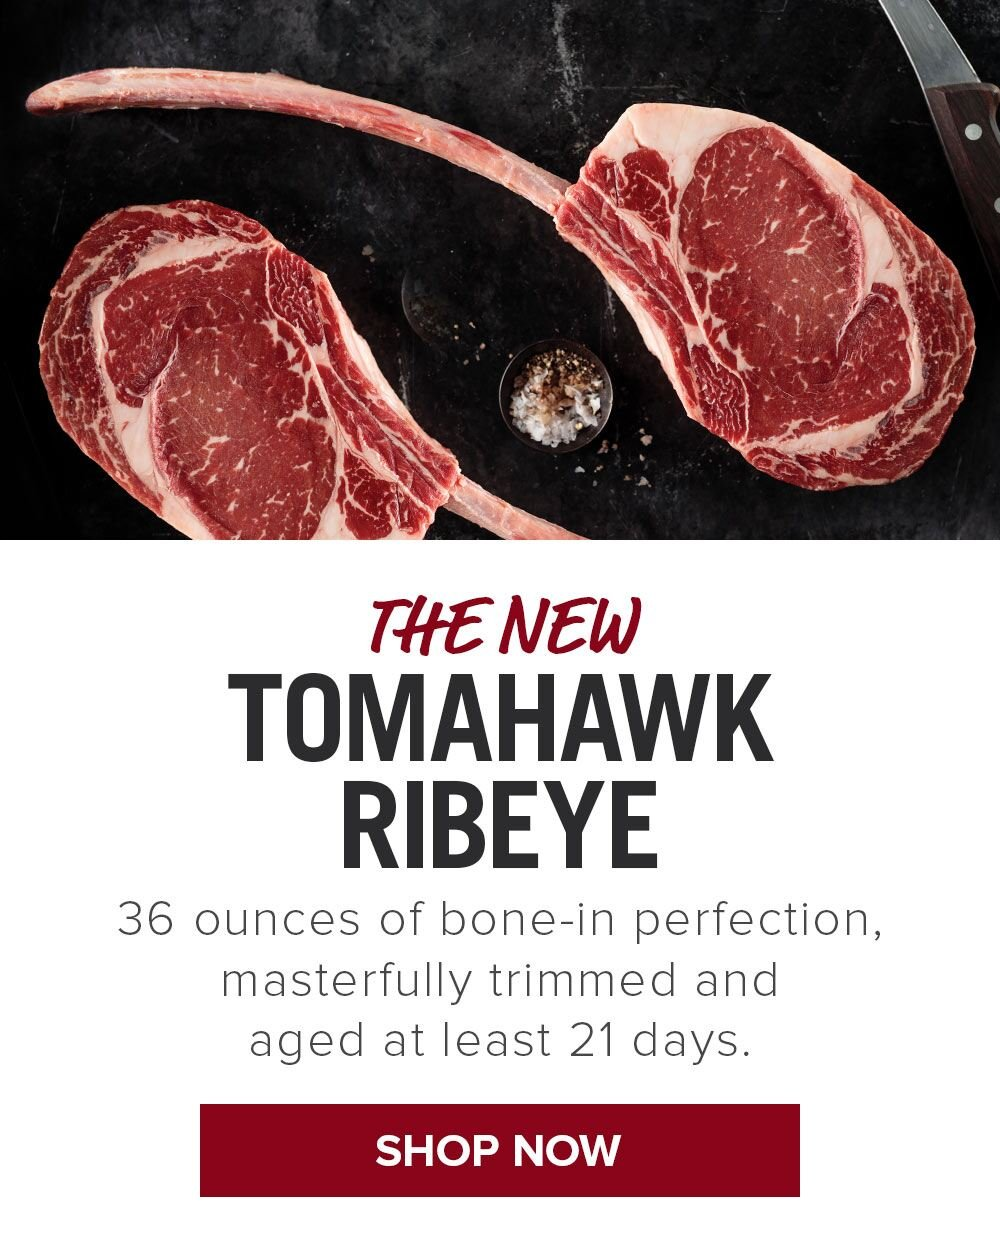 The New Tomahawk Ribeye | 36 ounces of bone-in perfection, masterfully trimmed and aged at least 21 days. || Shop Now